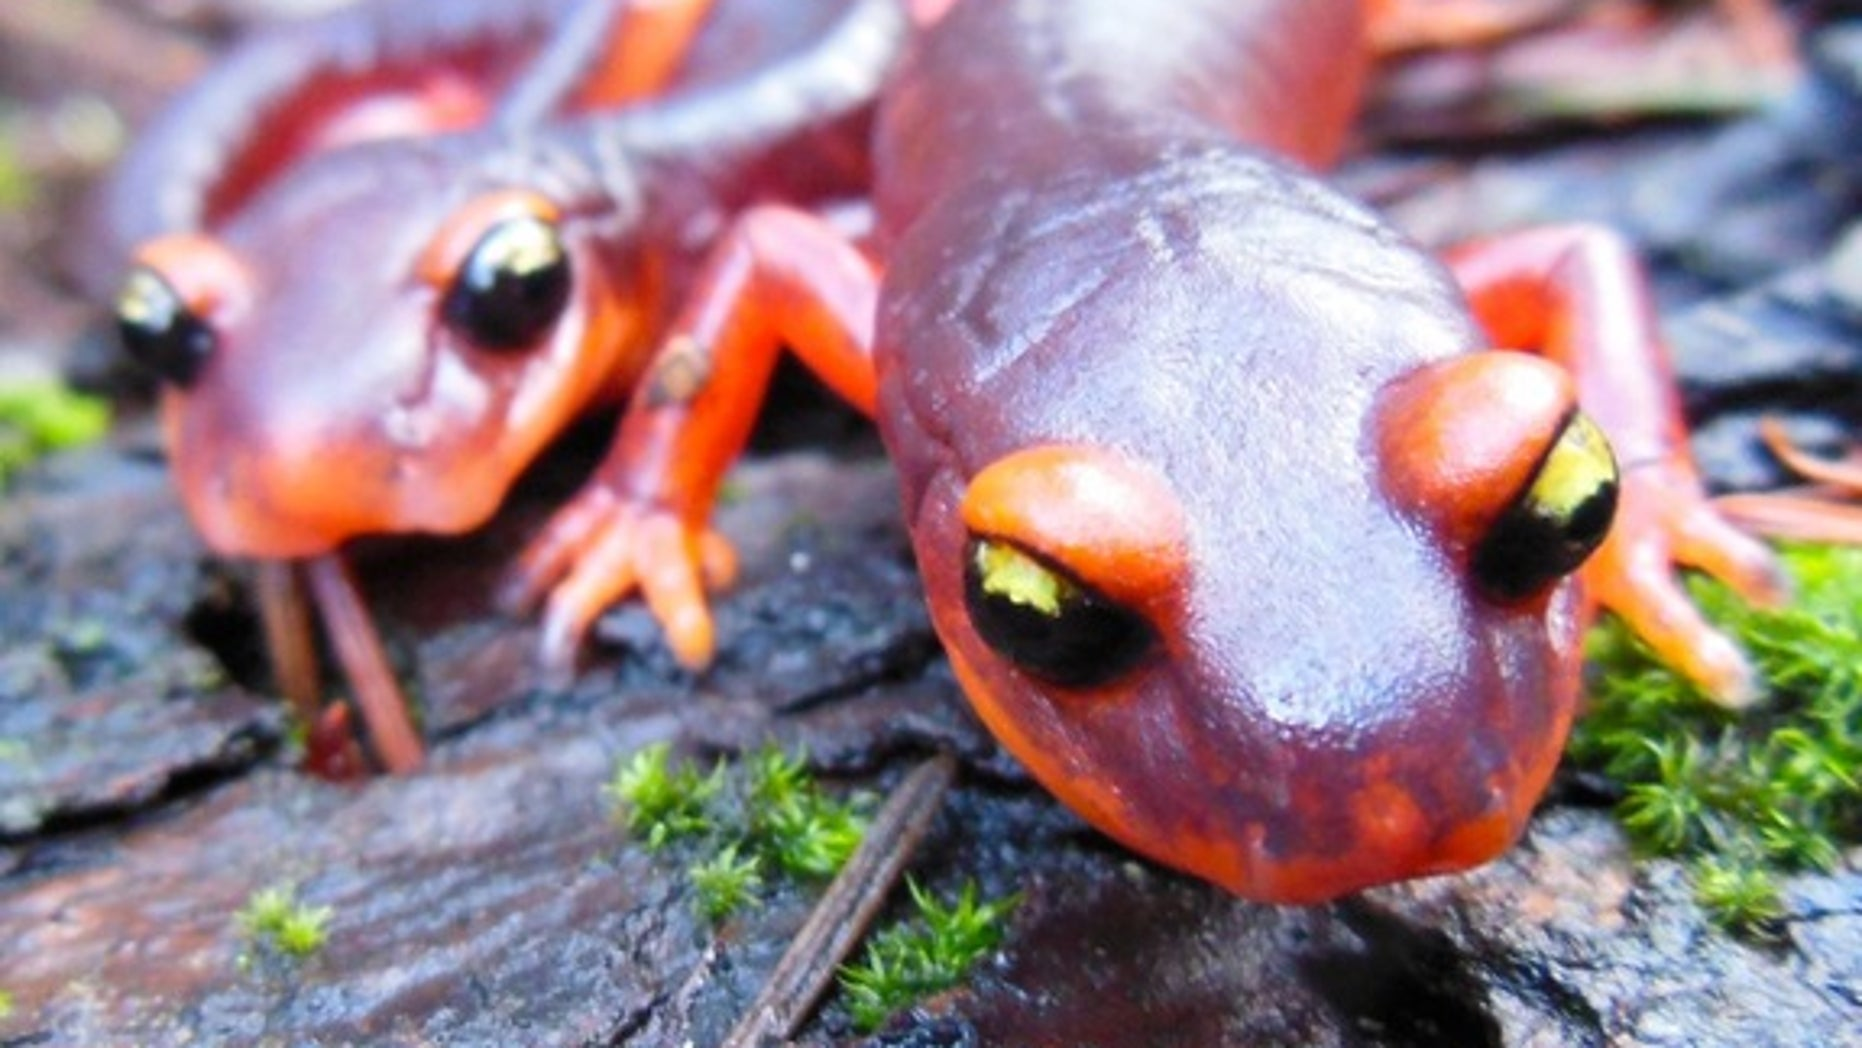 Two Ensatina salamanders (<em>Ensatina eschscholtzii</em>), a species native to the West Coast of the United States. These salamanders are likely vulnerable to a horrific new chytrid fungus that has spread from Asia to Europe and now threatens